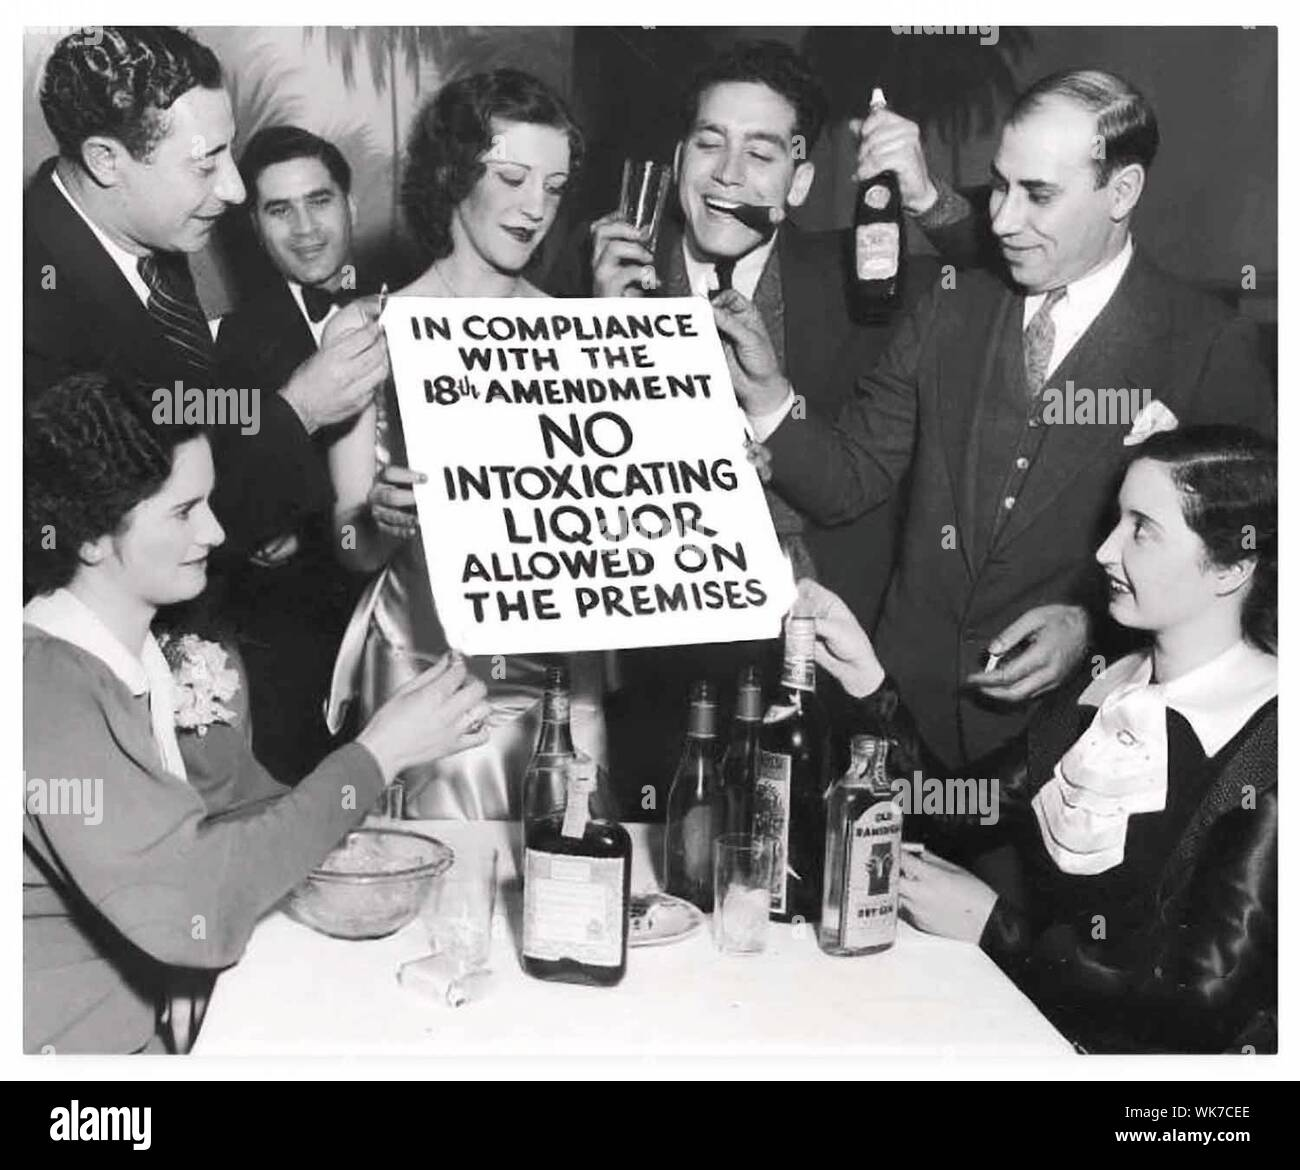 Prohibition times in America in the 30s Stock Photo